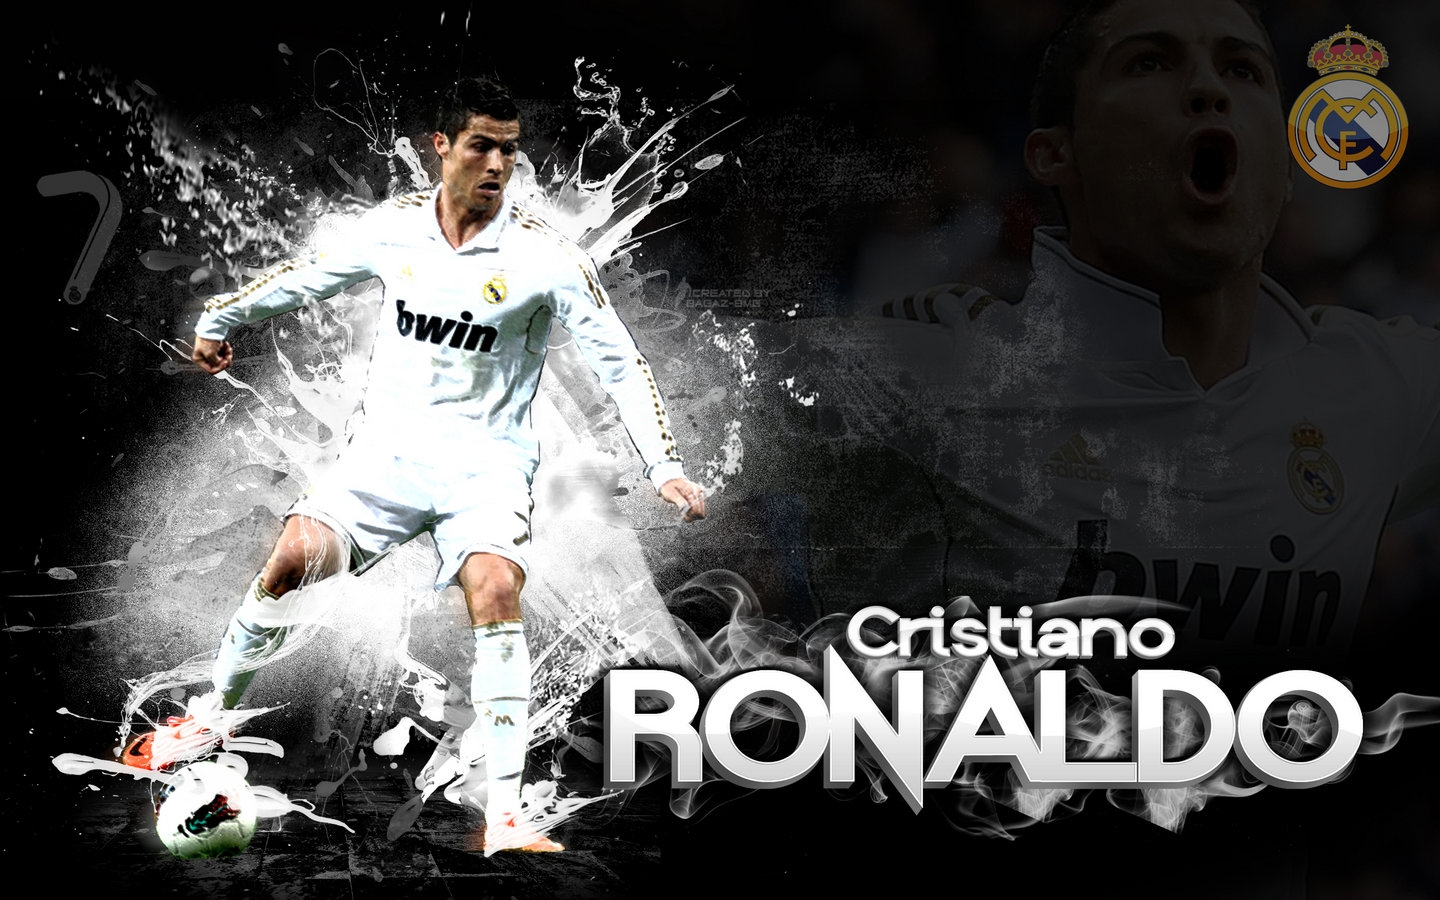 Cristiano Ronaldo Real Madrid Fresh Hd Wallpapers 12 2013